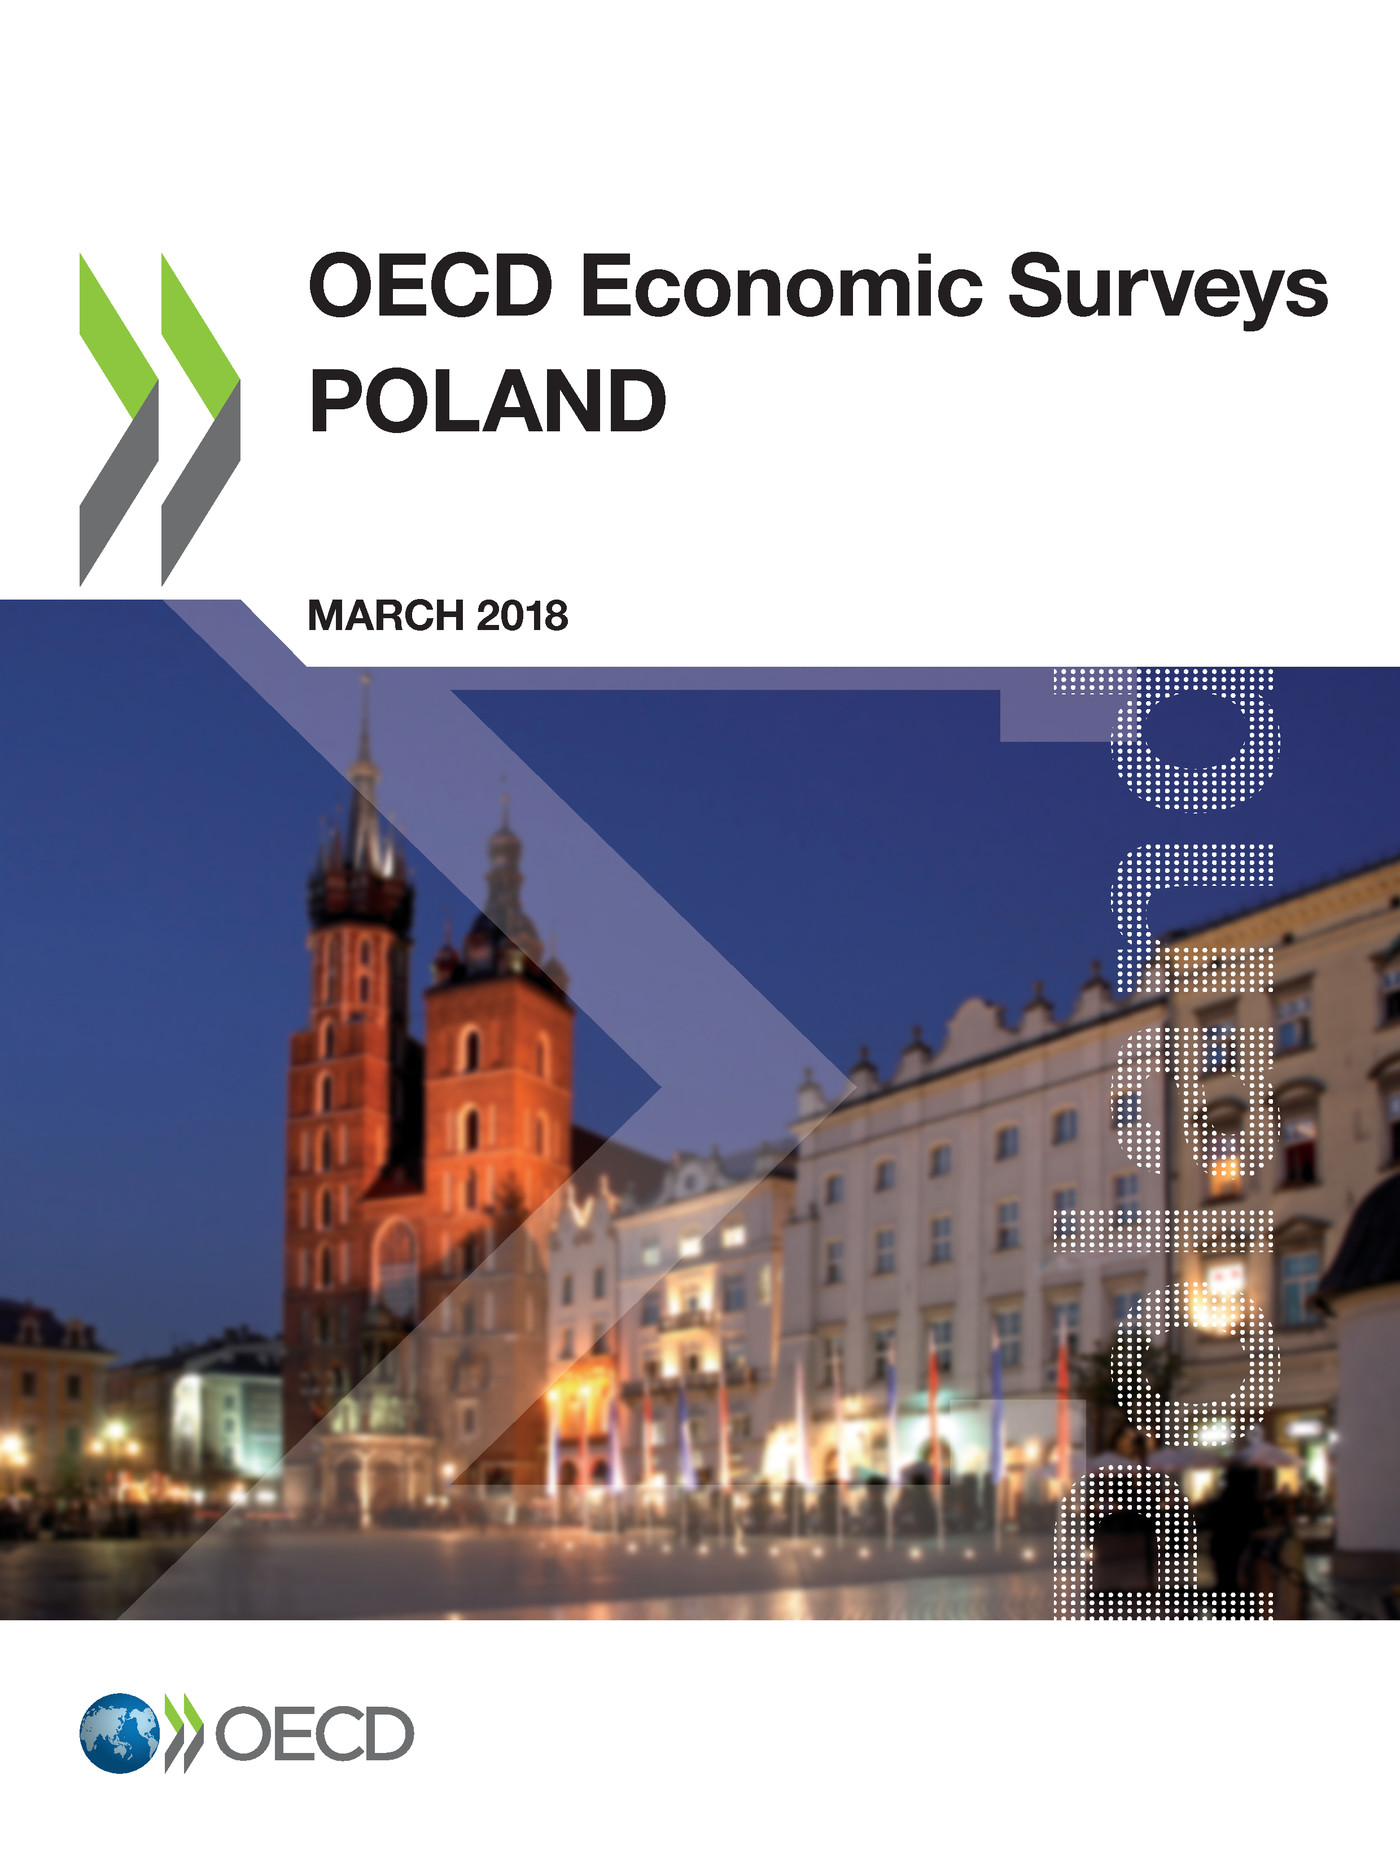 OECD Economic Surveys: Poland 2018 De  Collectif - OCDE / OECD